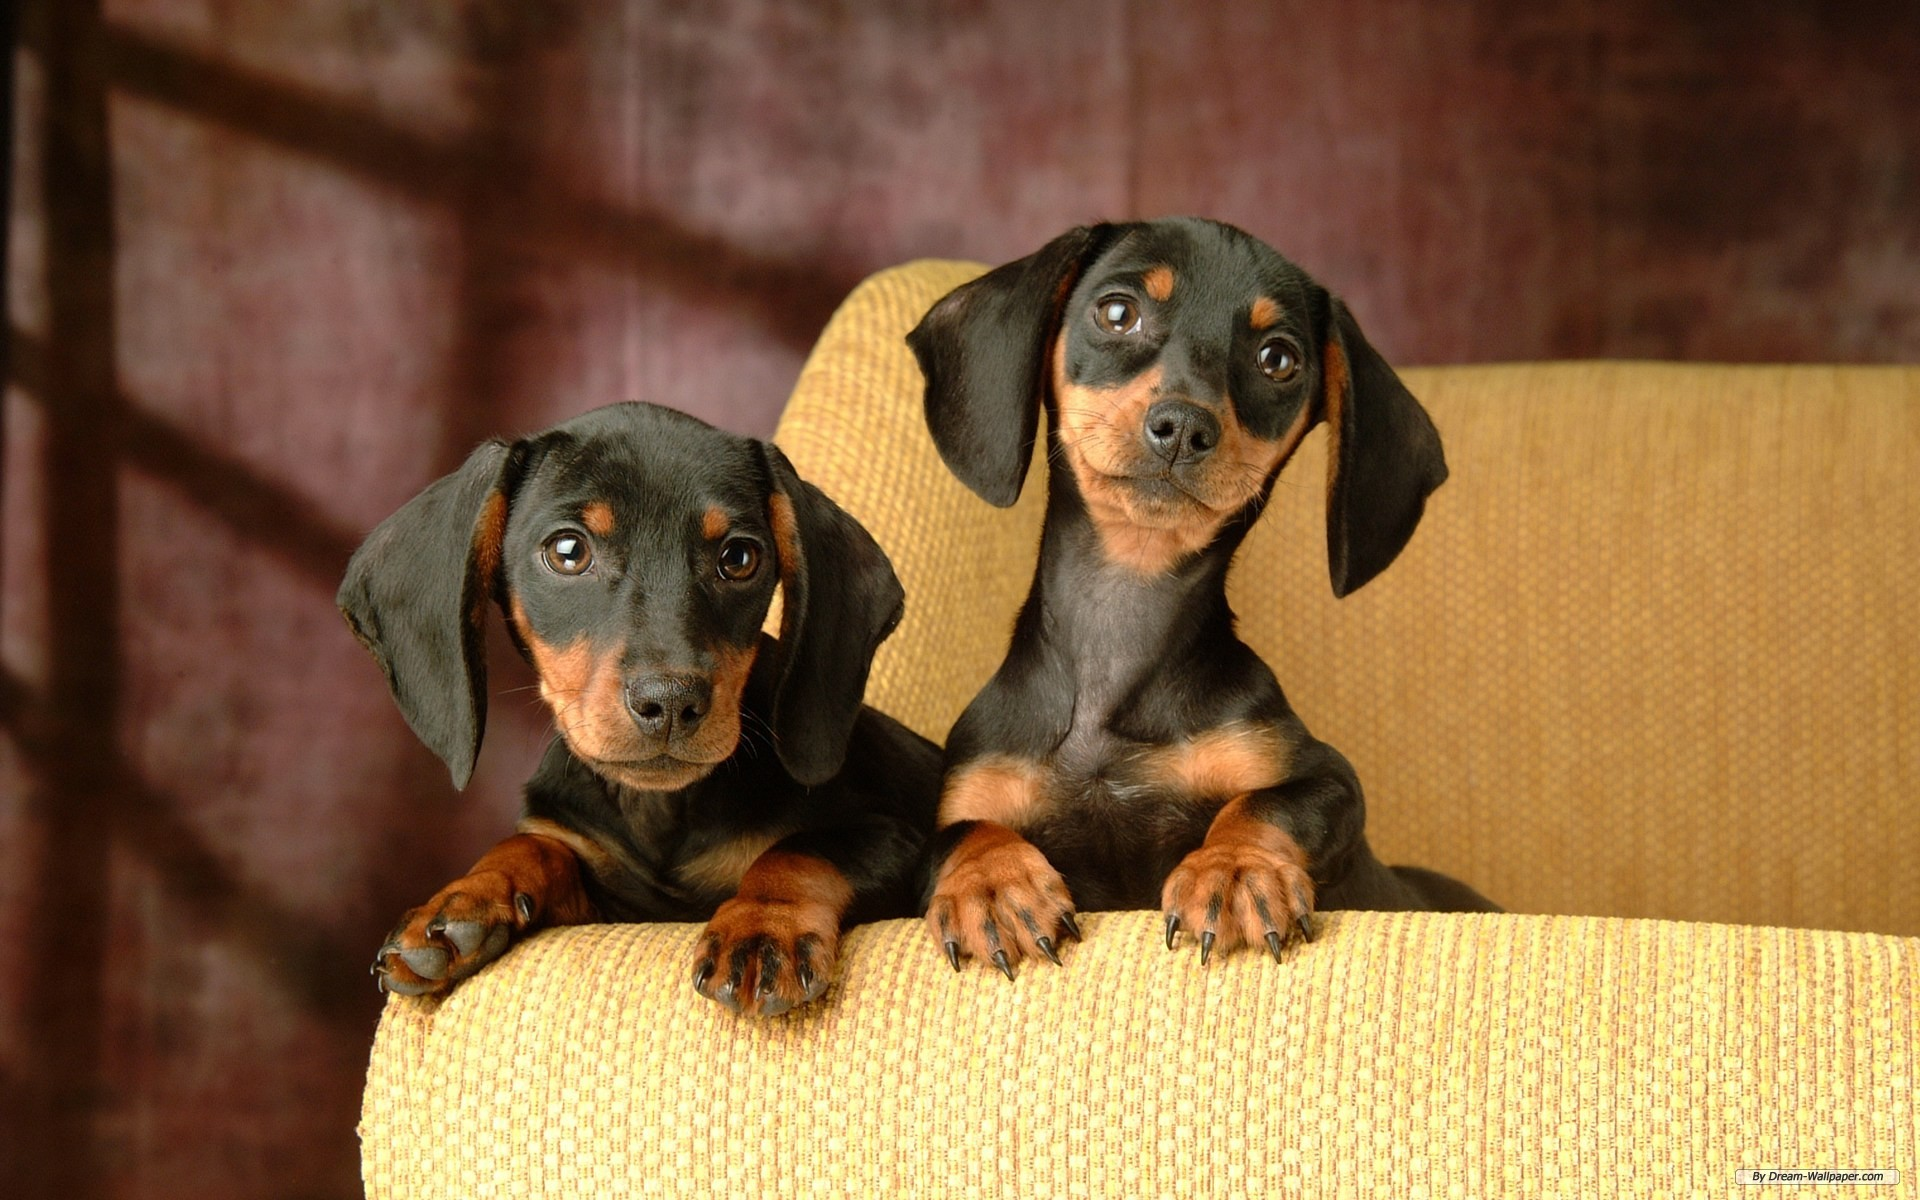 1920x1200 Free Animal wallpaper - Miniature Dachshund 2 wallpaper -   wallpaper - Index 1